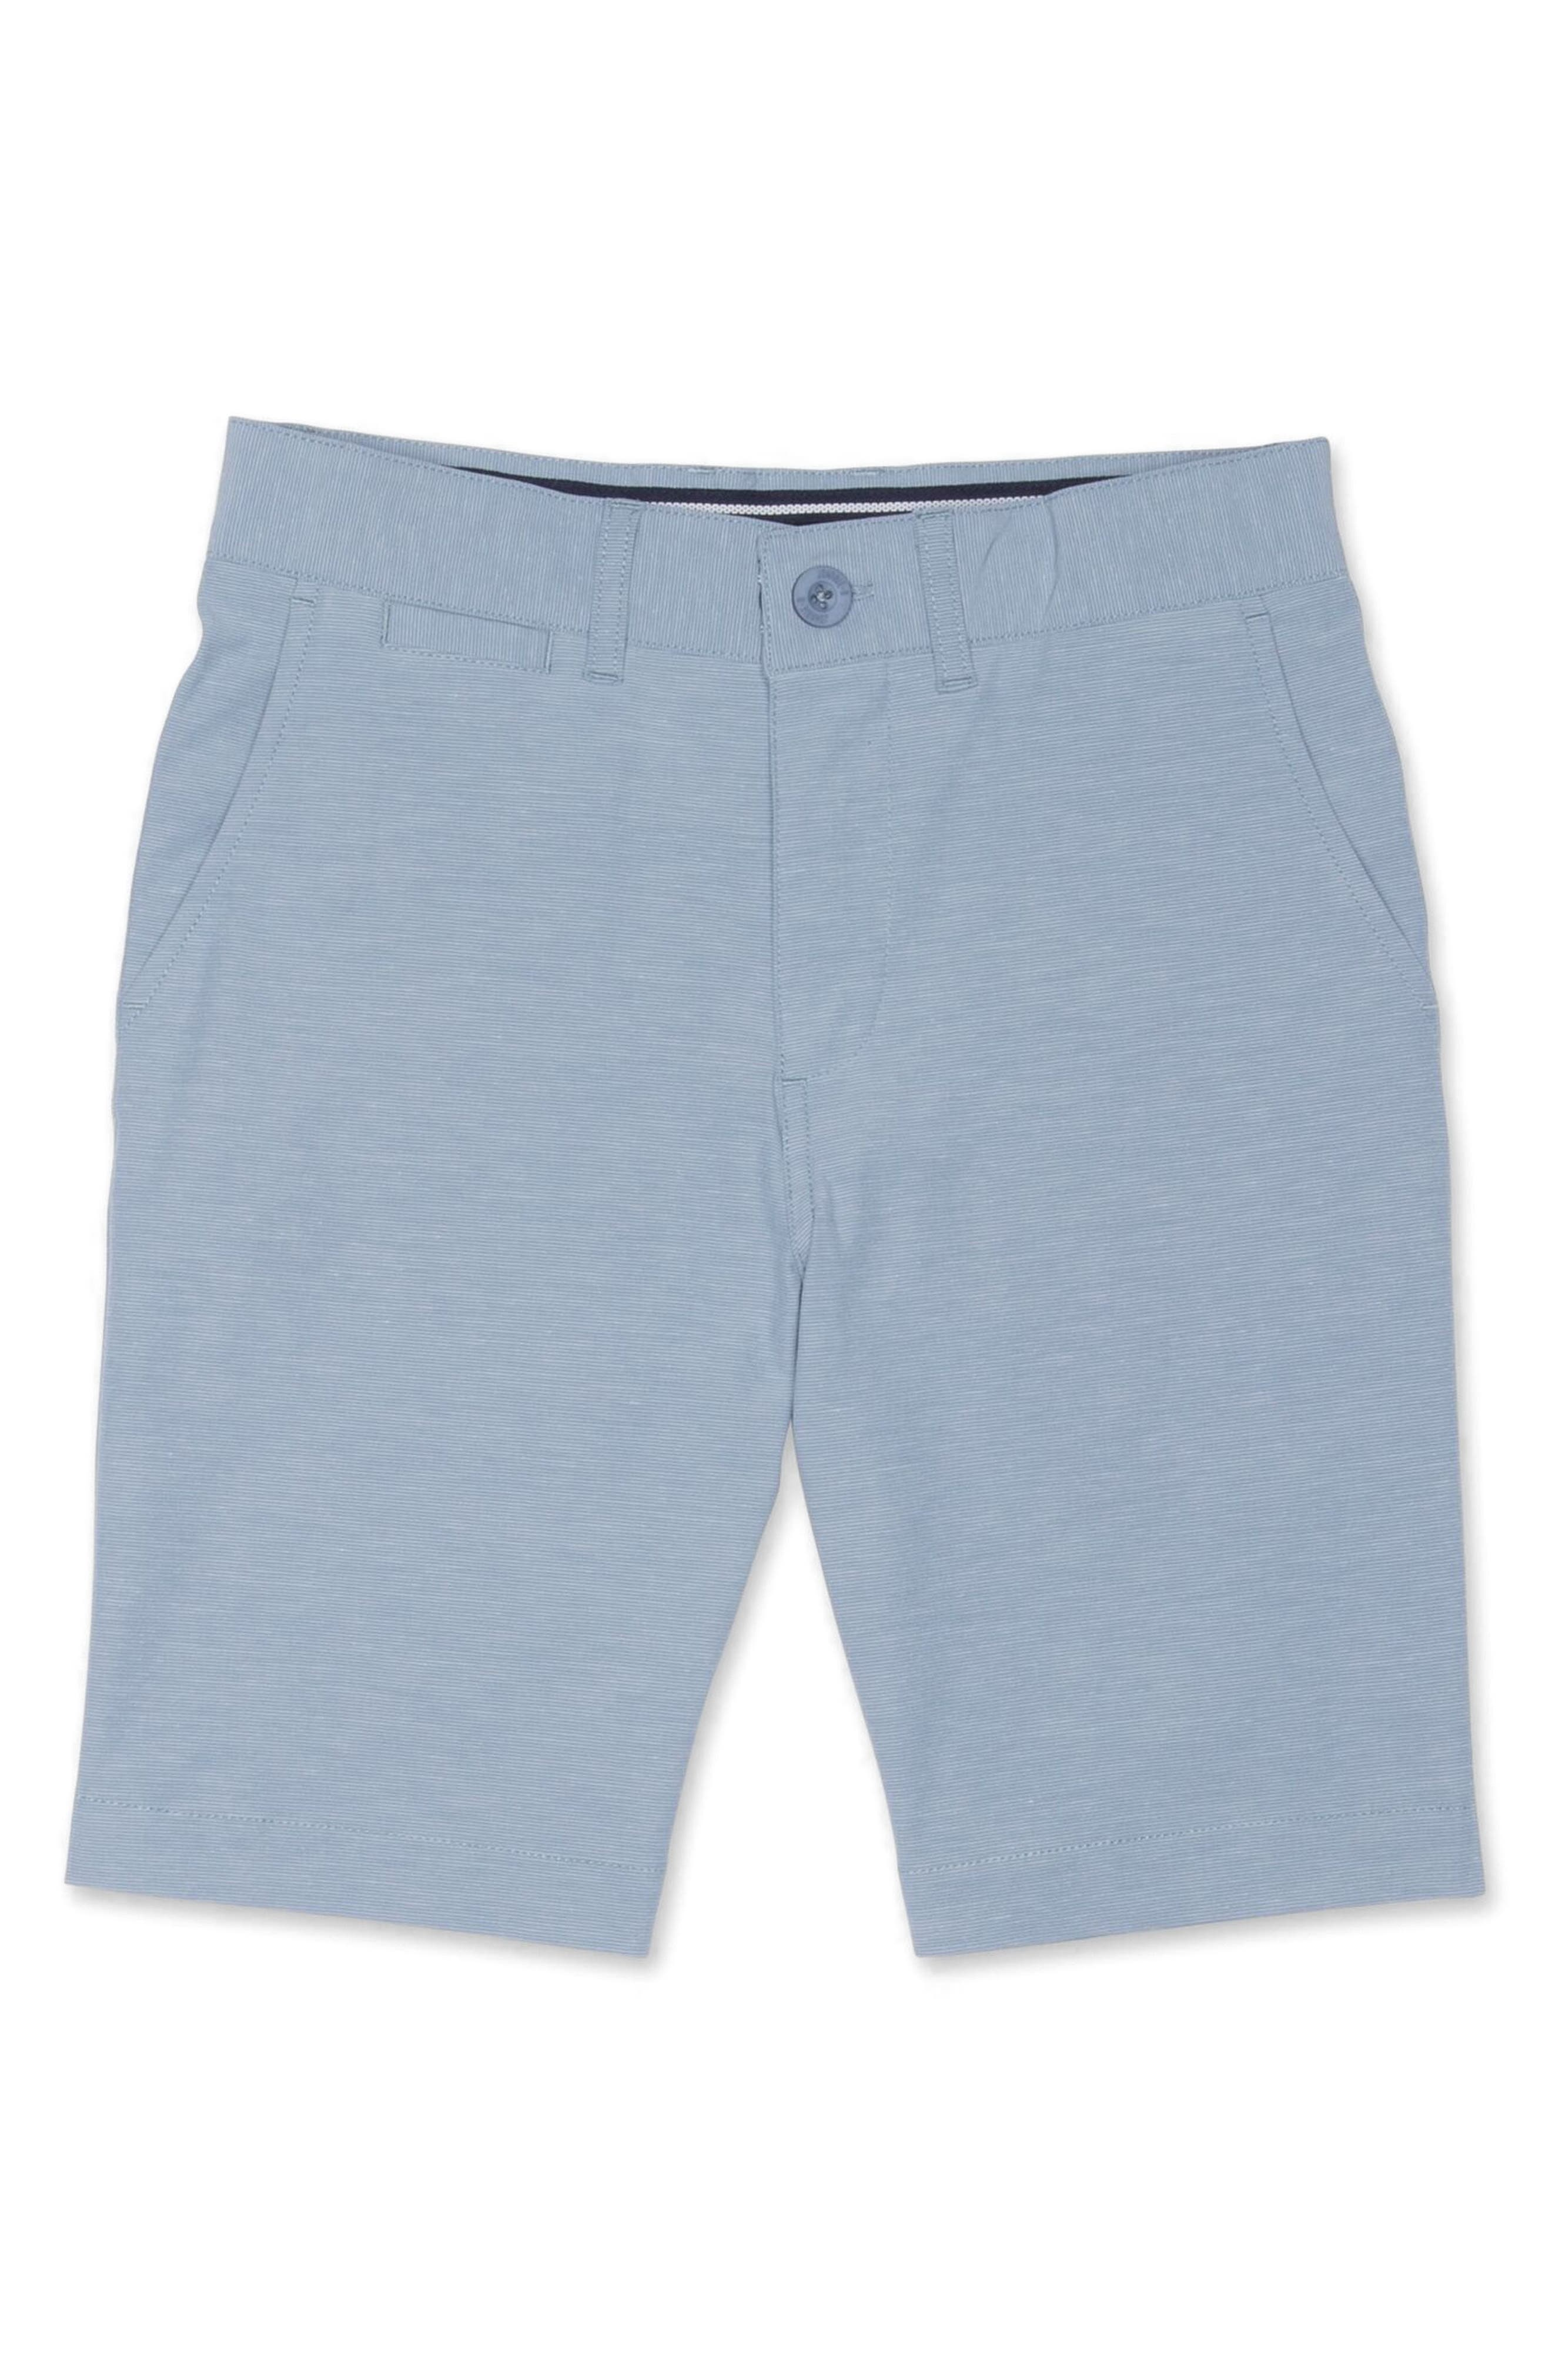 Wyatt Shorts,                         Main,                         color, RIPPLE